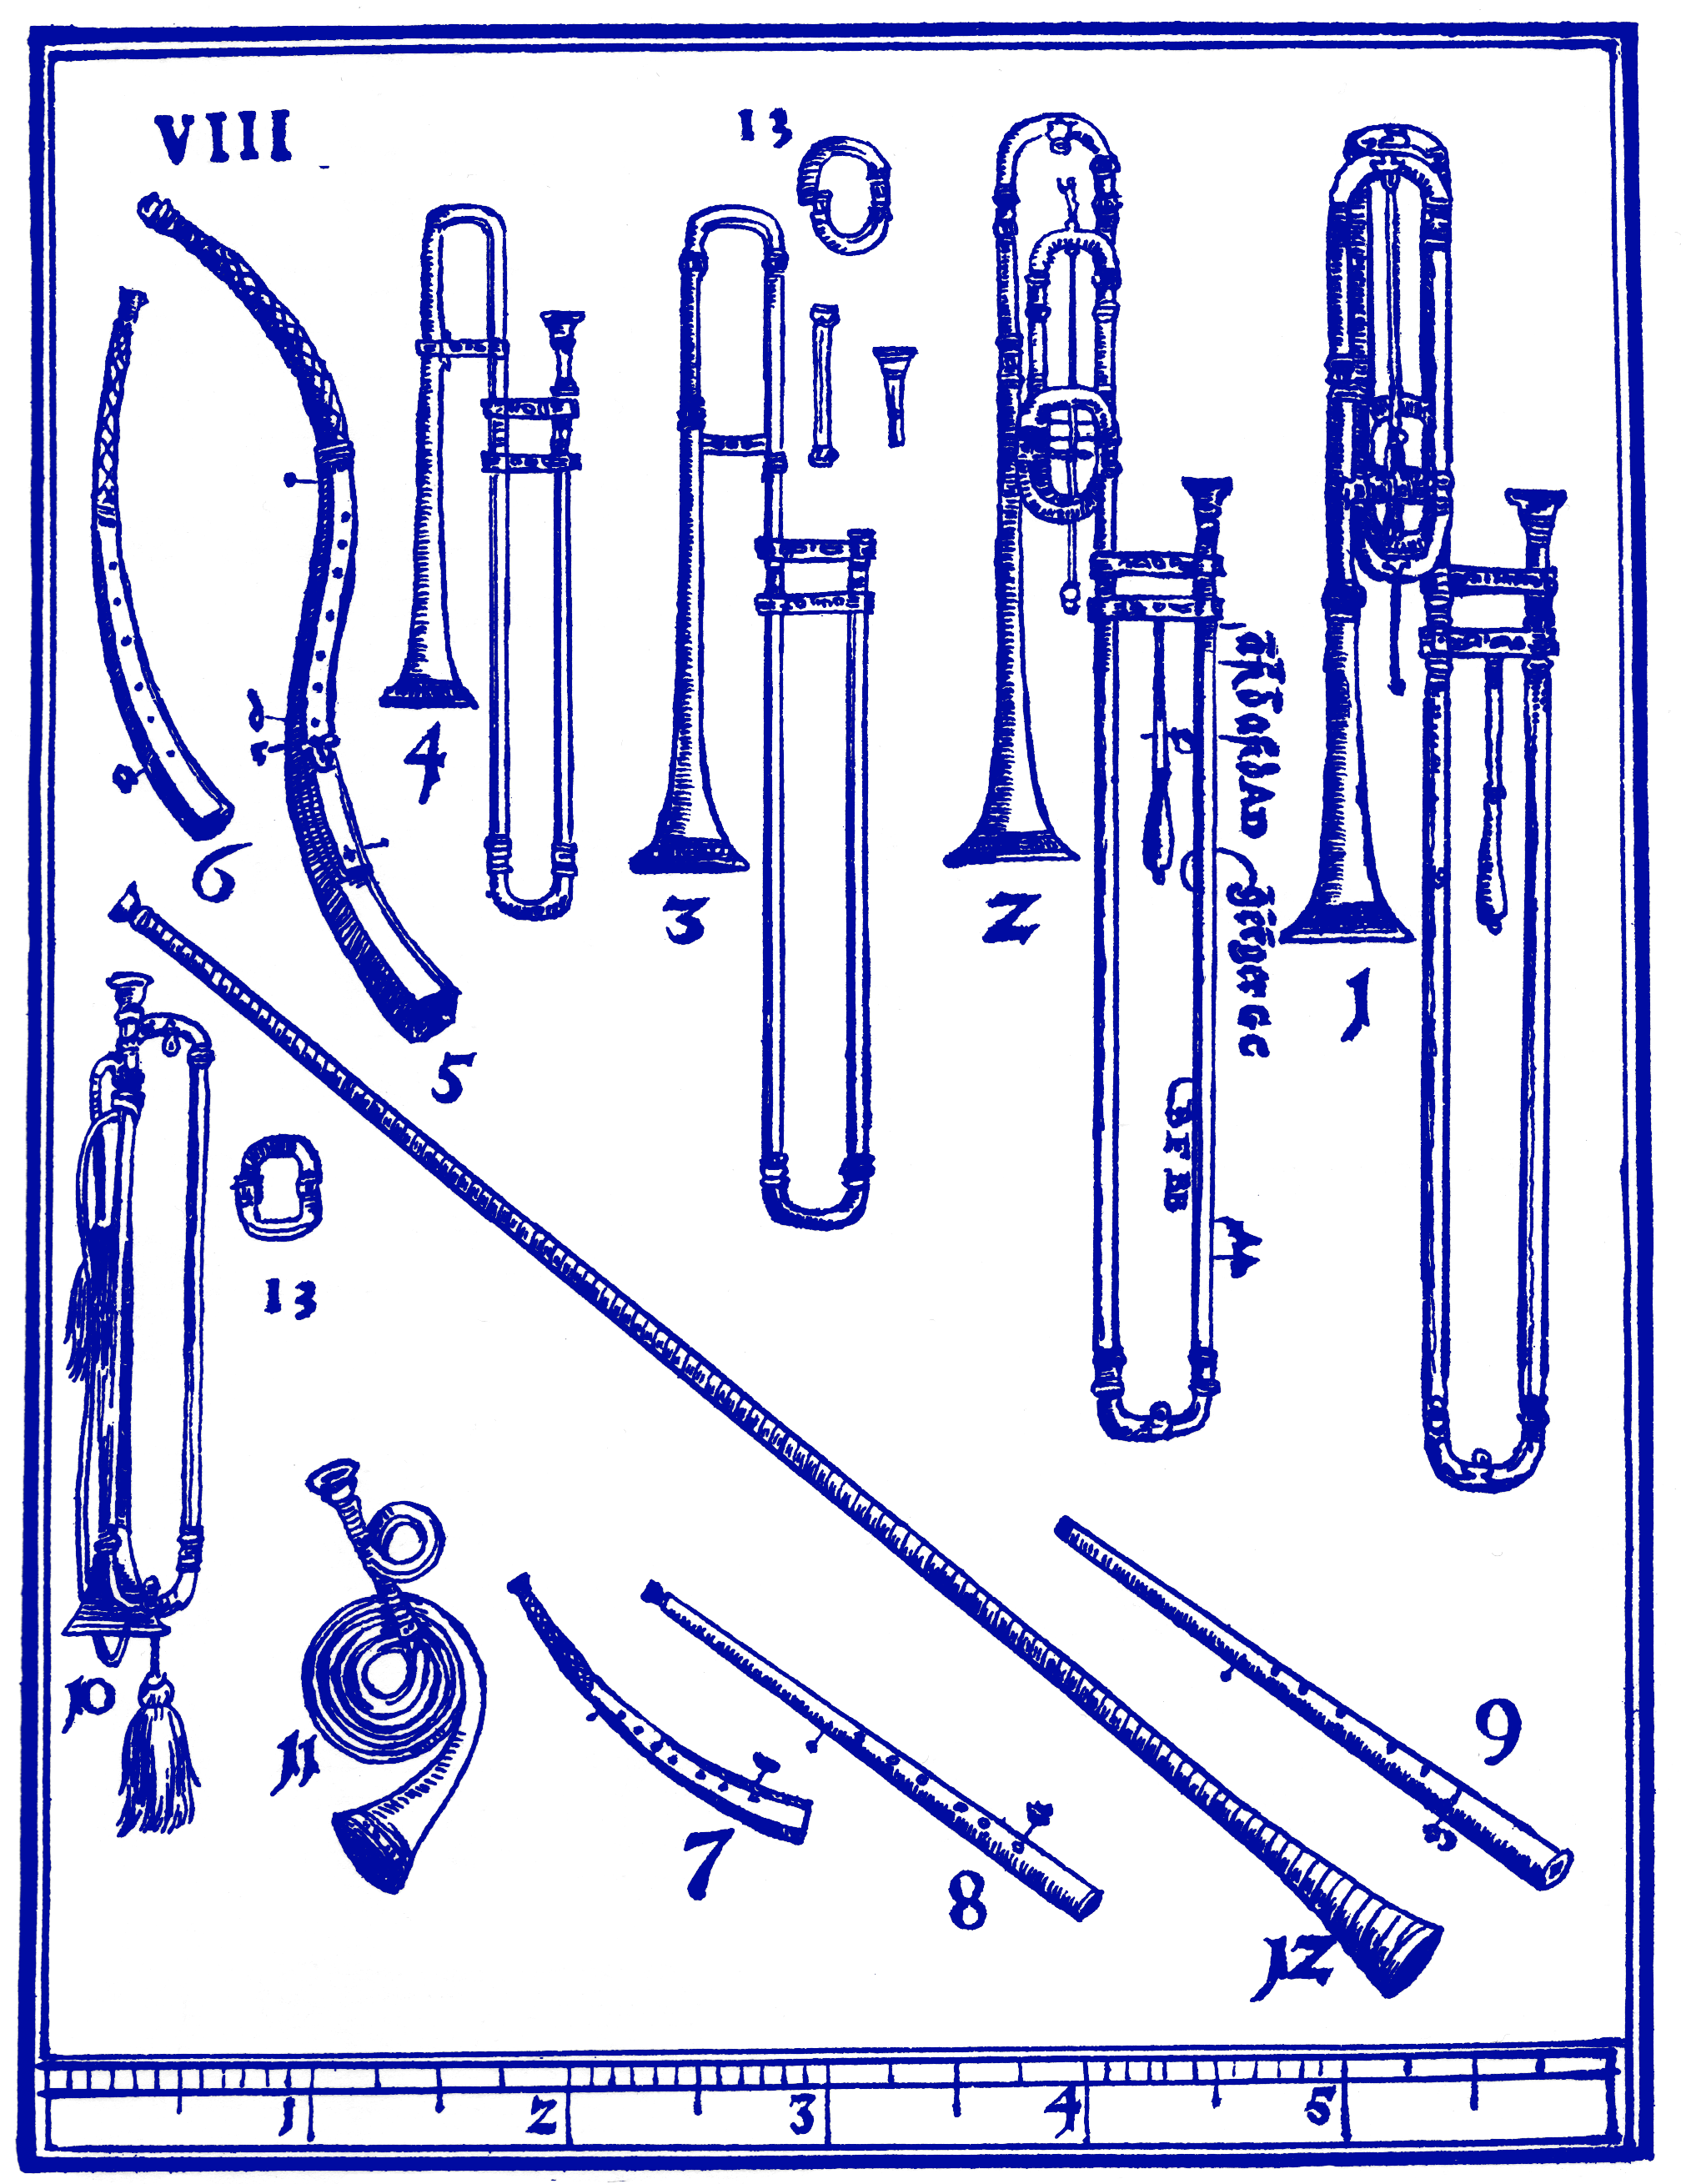 Check out the shots of the sackbuts (#1-4), alongside trumpets and cornetti.From  Syntagma Musicum  (1614-20)by Michael Praetorius.